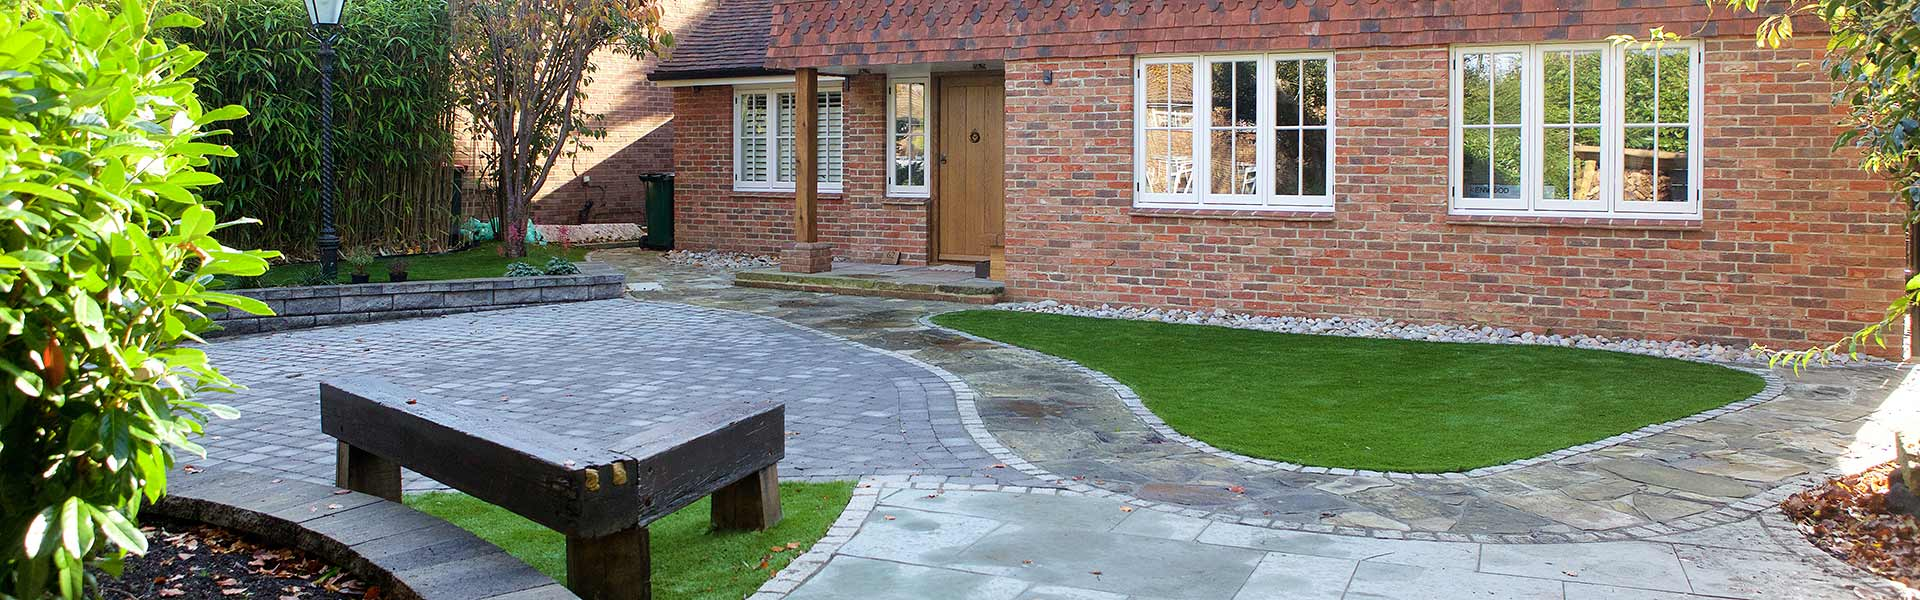 Artificial Grass for Families | The Sussex Artificial Grass Company